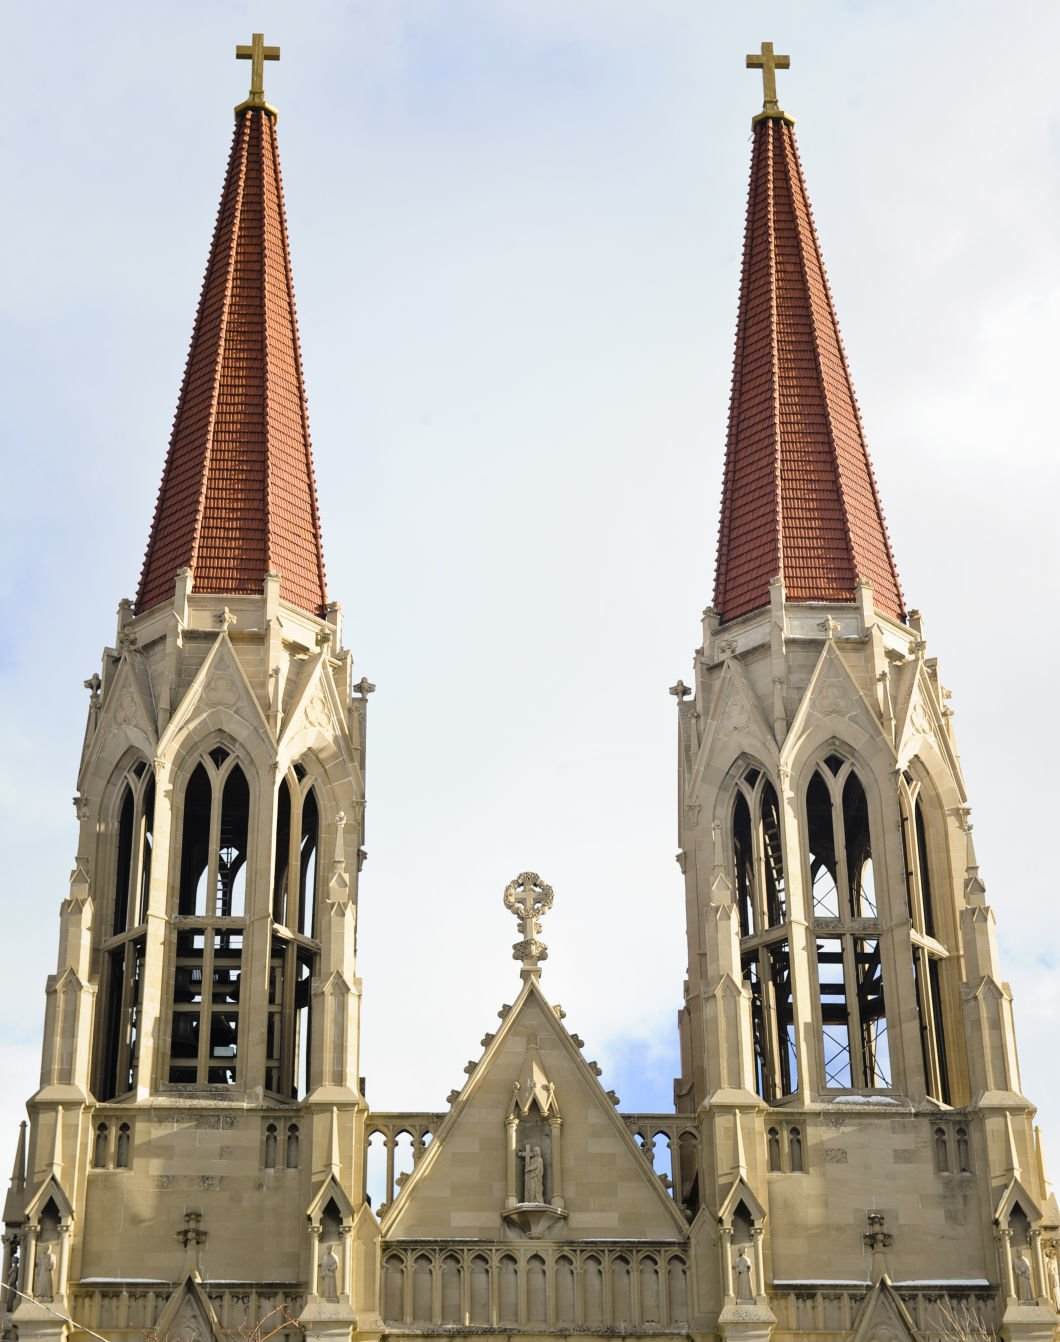 The Cathedral of St. Helena